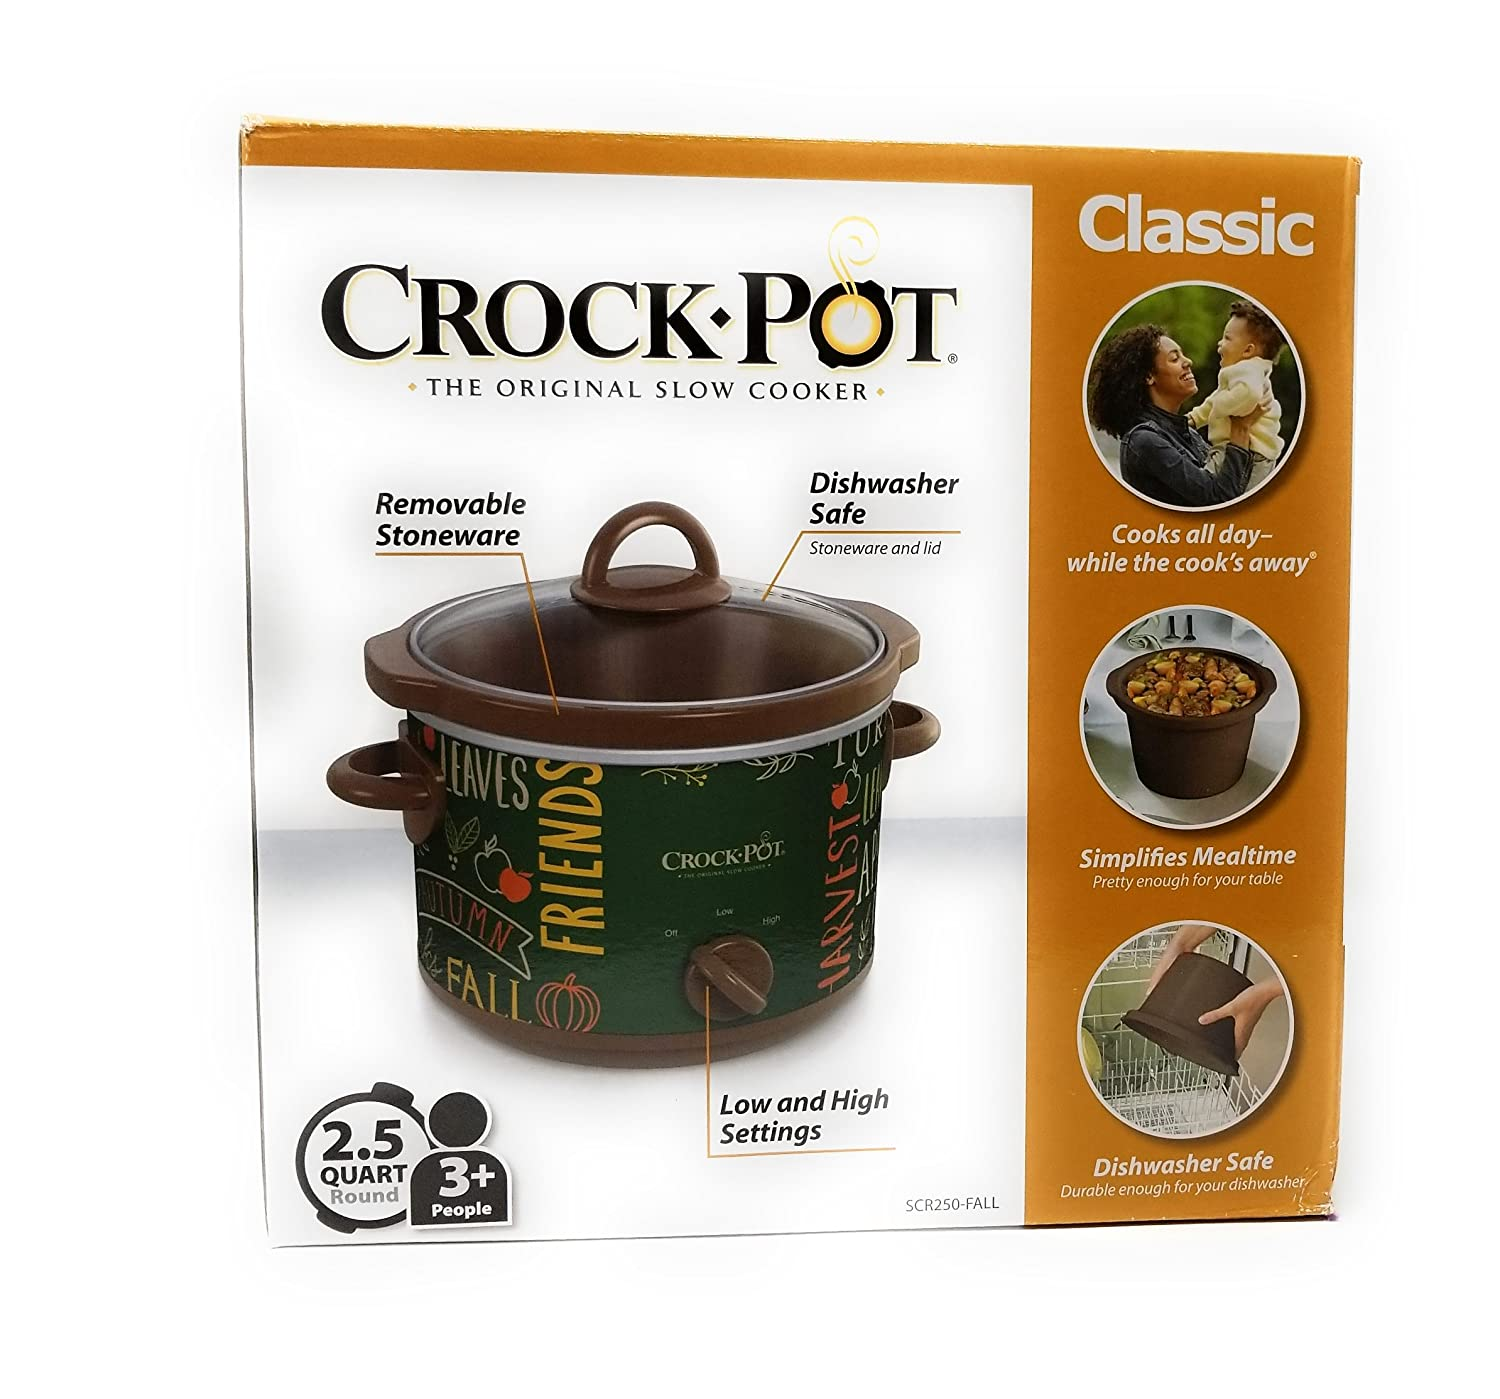 Limited Edition Classic Crock Pot Slow Cooker 2.5 Quart (Fall Green)